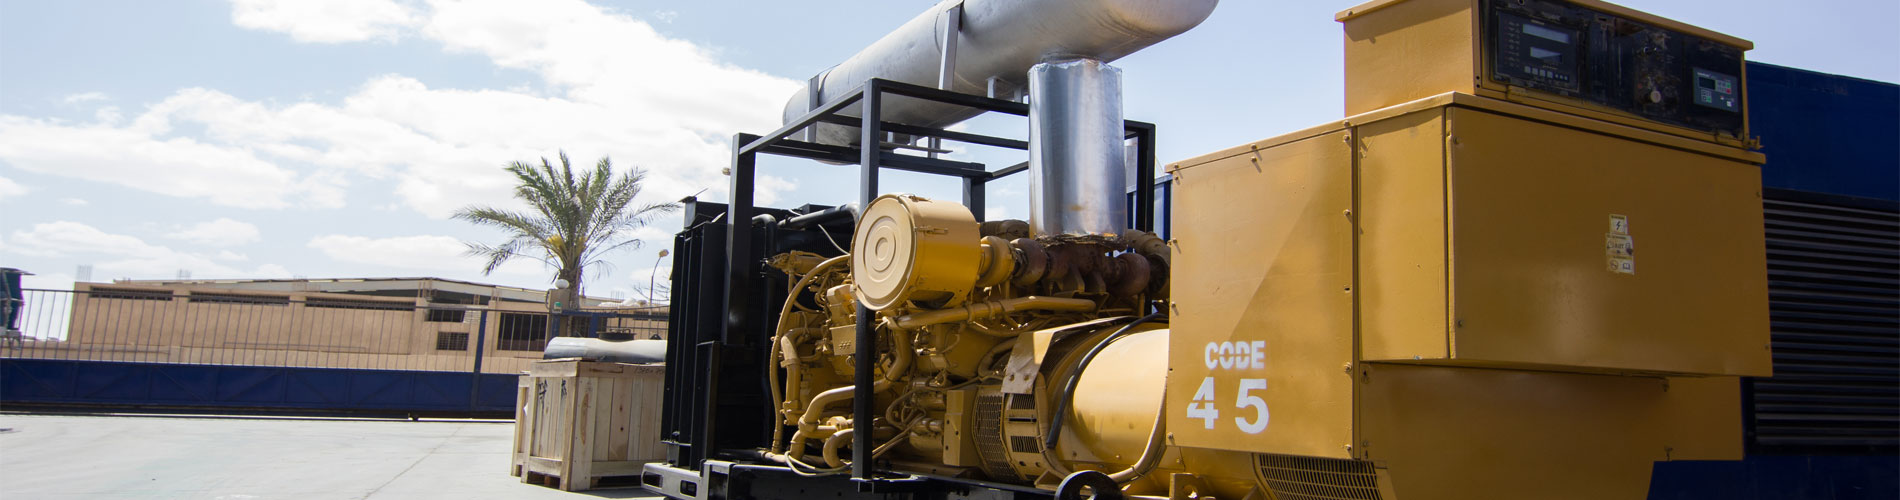 Power-Genset